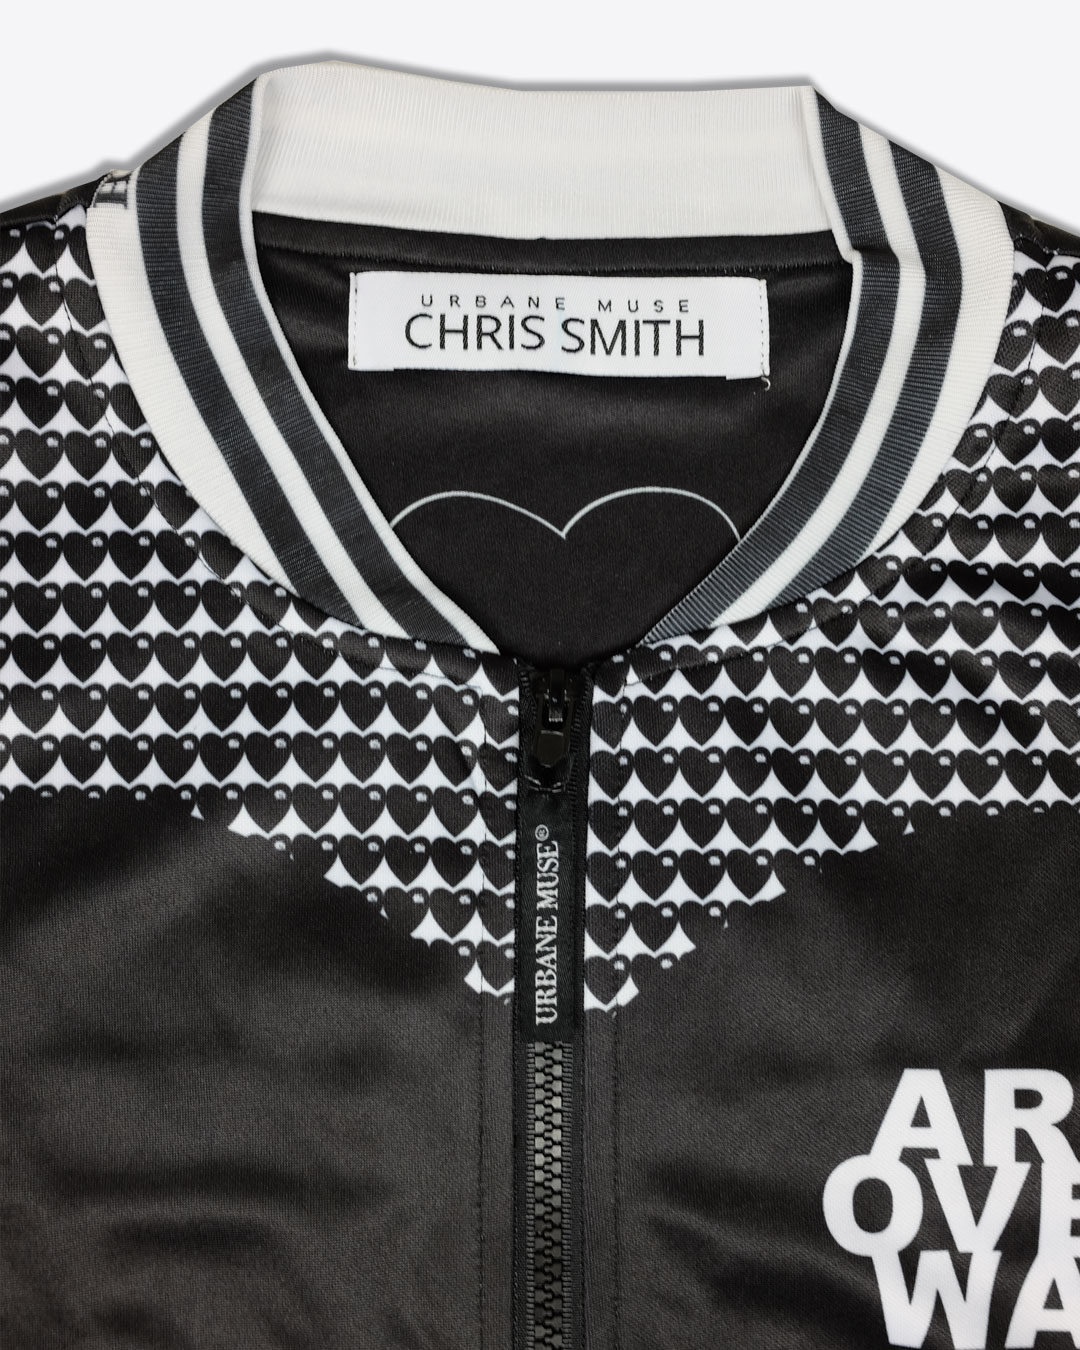 HEART-LOGO-photo2-URBANE-MUSE-CHRIS-SMITH-BOMBER-JACKET-with-Lining